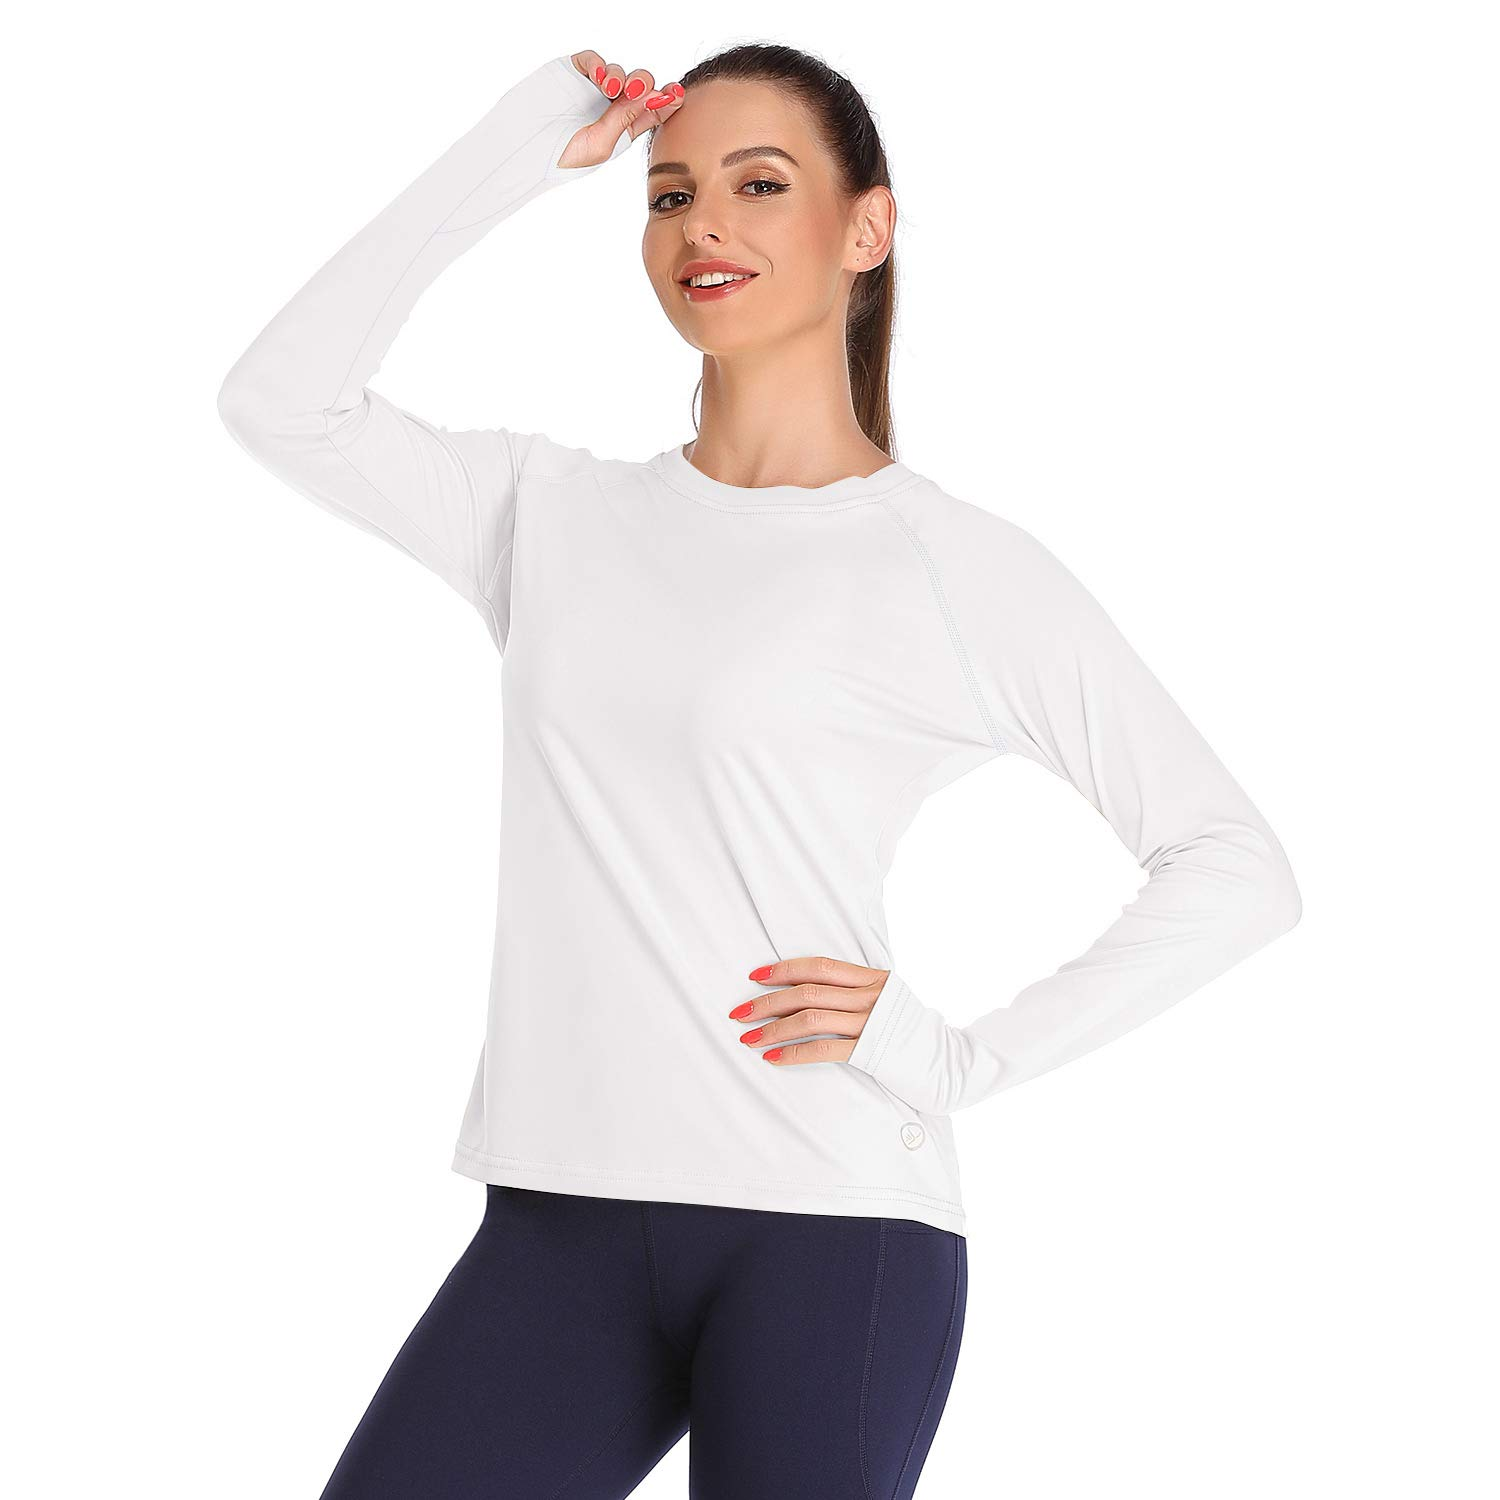 DAYOUNG Womens UPF 50+ UV Sun Protection Running Hiking Outdoors Performance Long Sleeve T-Shirt Athletic Top with Thumb Hole YWT11 White XXL by DAYOUNG